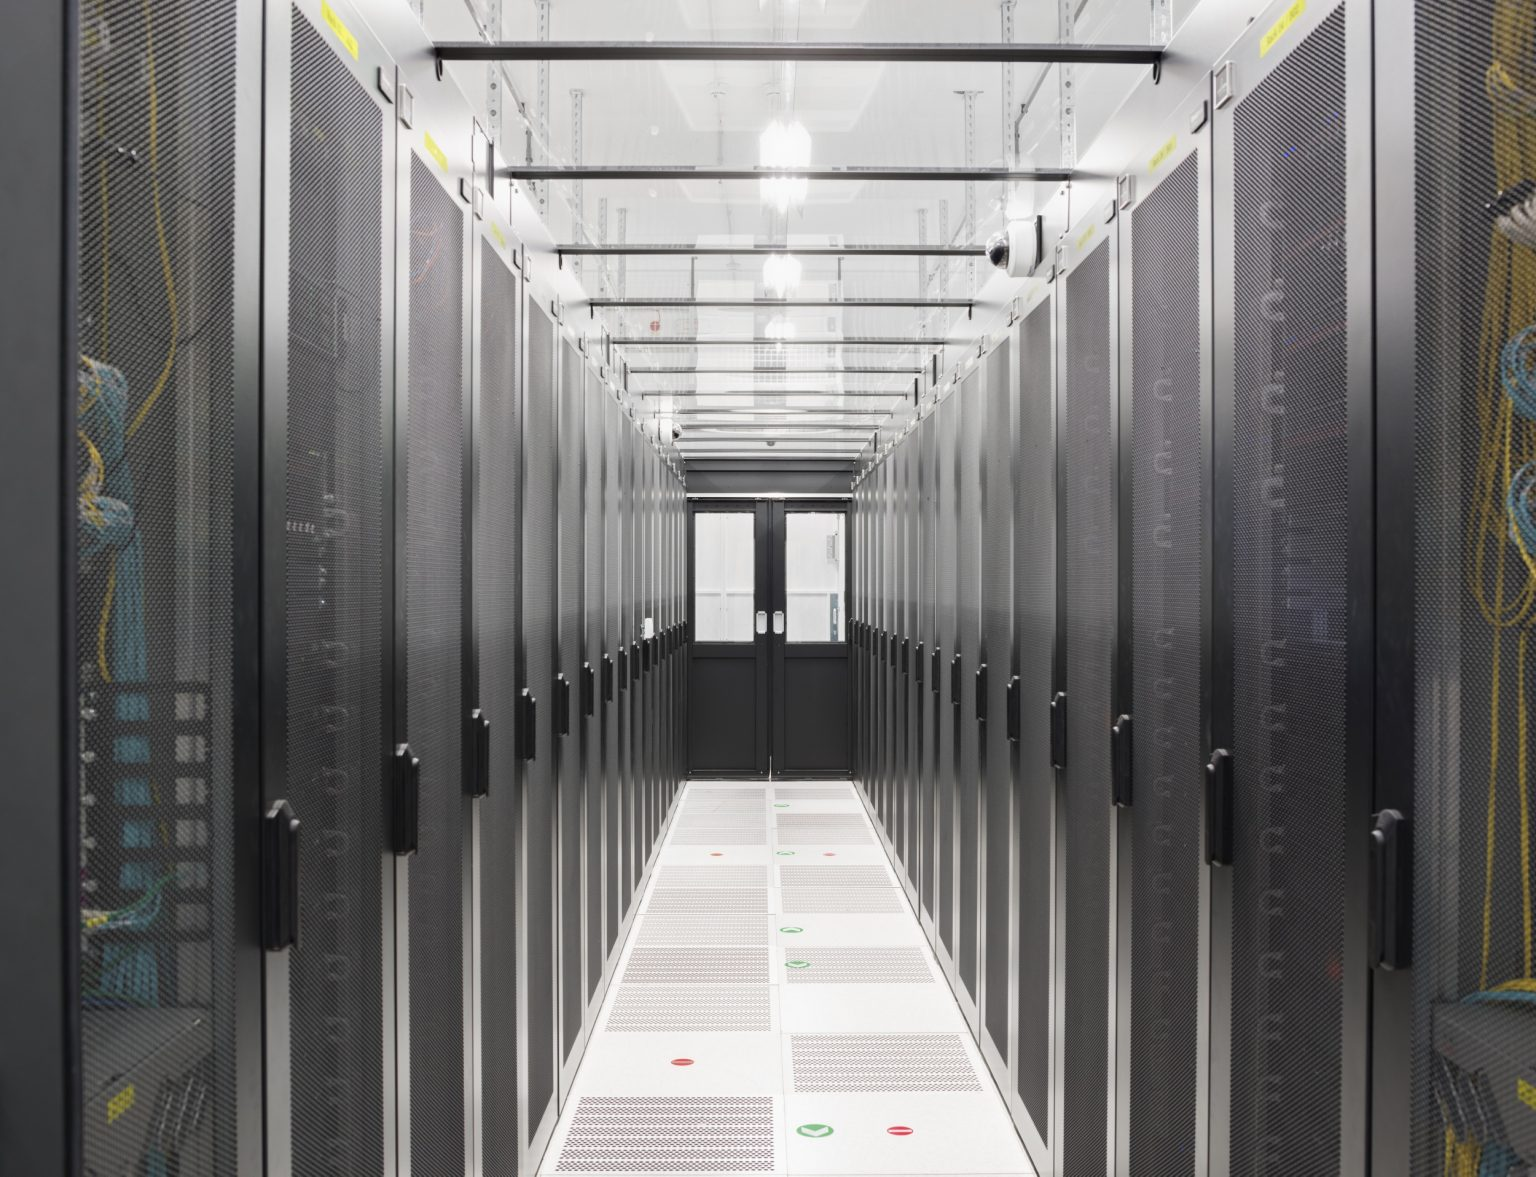 Grand Duchy of Luxembourg, Luxembourg City, July 2016:  an interior view of a data center of Live Jasmine located in the outskirt of the city. Founded in Hungary in 2001 Live Jasmin is currently the largest platform provider in the Video chat industry: with 10.000 models online which can earn up to 50,000 euros per day, the web site - with HQ in Luxembourg and offices in Budapest, Los Angeles Amsterdam and Hong Kong- is ranking globally the number one in the industry for earnings, cam operations and number of visitors (35 millions per day).  / Gran Ducato di Lussemburgo, Lussemburgo, Luglio 2016: una veduta interna di un data center di Live Jasmine ubicato nella periferia della città. Fondato in Ungheria nel 2001, Live Jasmin è attualmente il principale sito dell'industria delle Video Chat erotiche; con 10.000 modelle online al giorno che possono arrivare a guadagnare fino a 50,000 euro al giorno, il sito - con quartier generale a Lussemburgo e uffici a Budapest, Los Angeles, Amsterdam e Hong Kong - è il numero uno al mondo nel settore per guadagni, numero di cam operations e di visitatori (35 milioni al giorno).